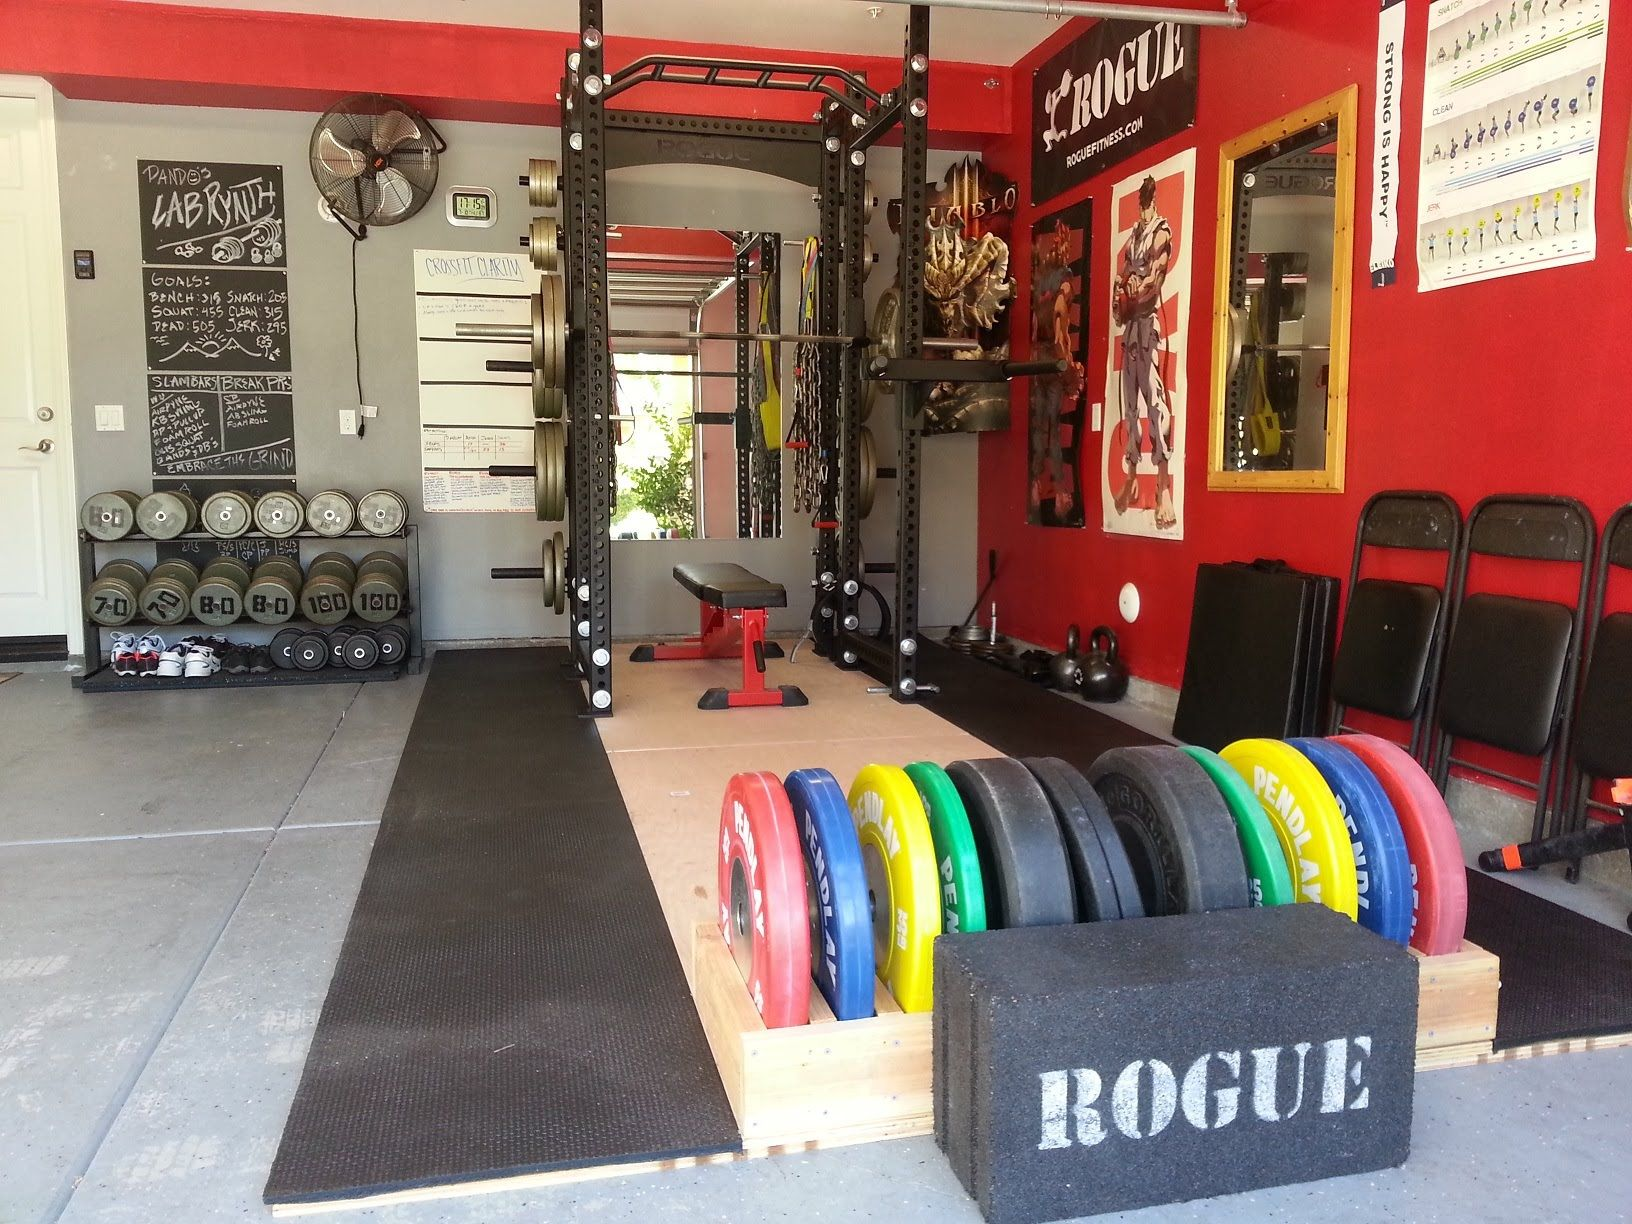 Garage Gym Reviews Diy Platform Bright And Colorful Free Weights Combined With Heavy Dumbbells And